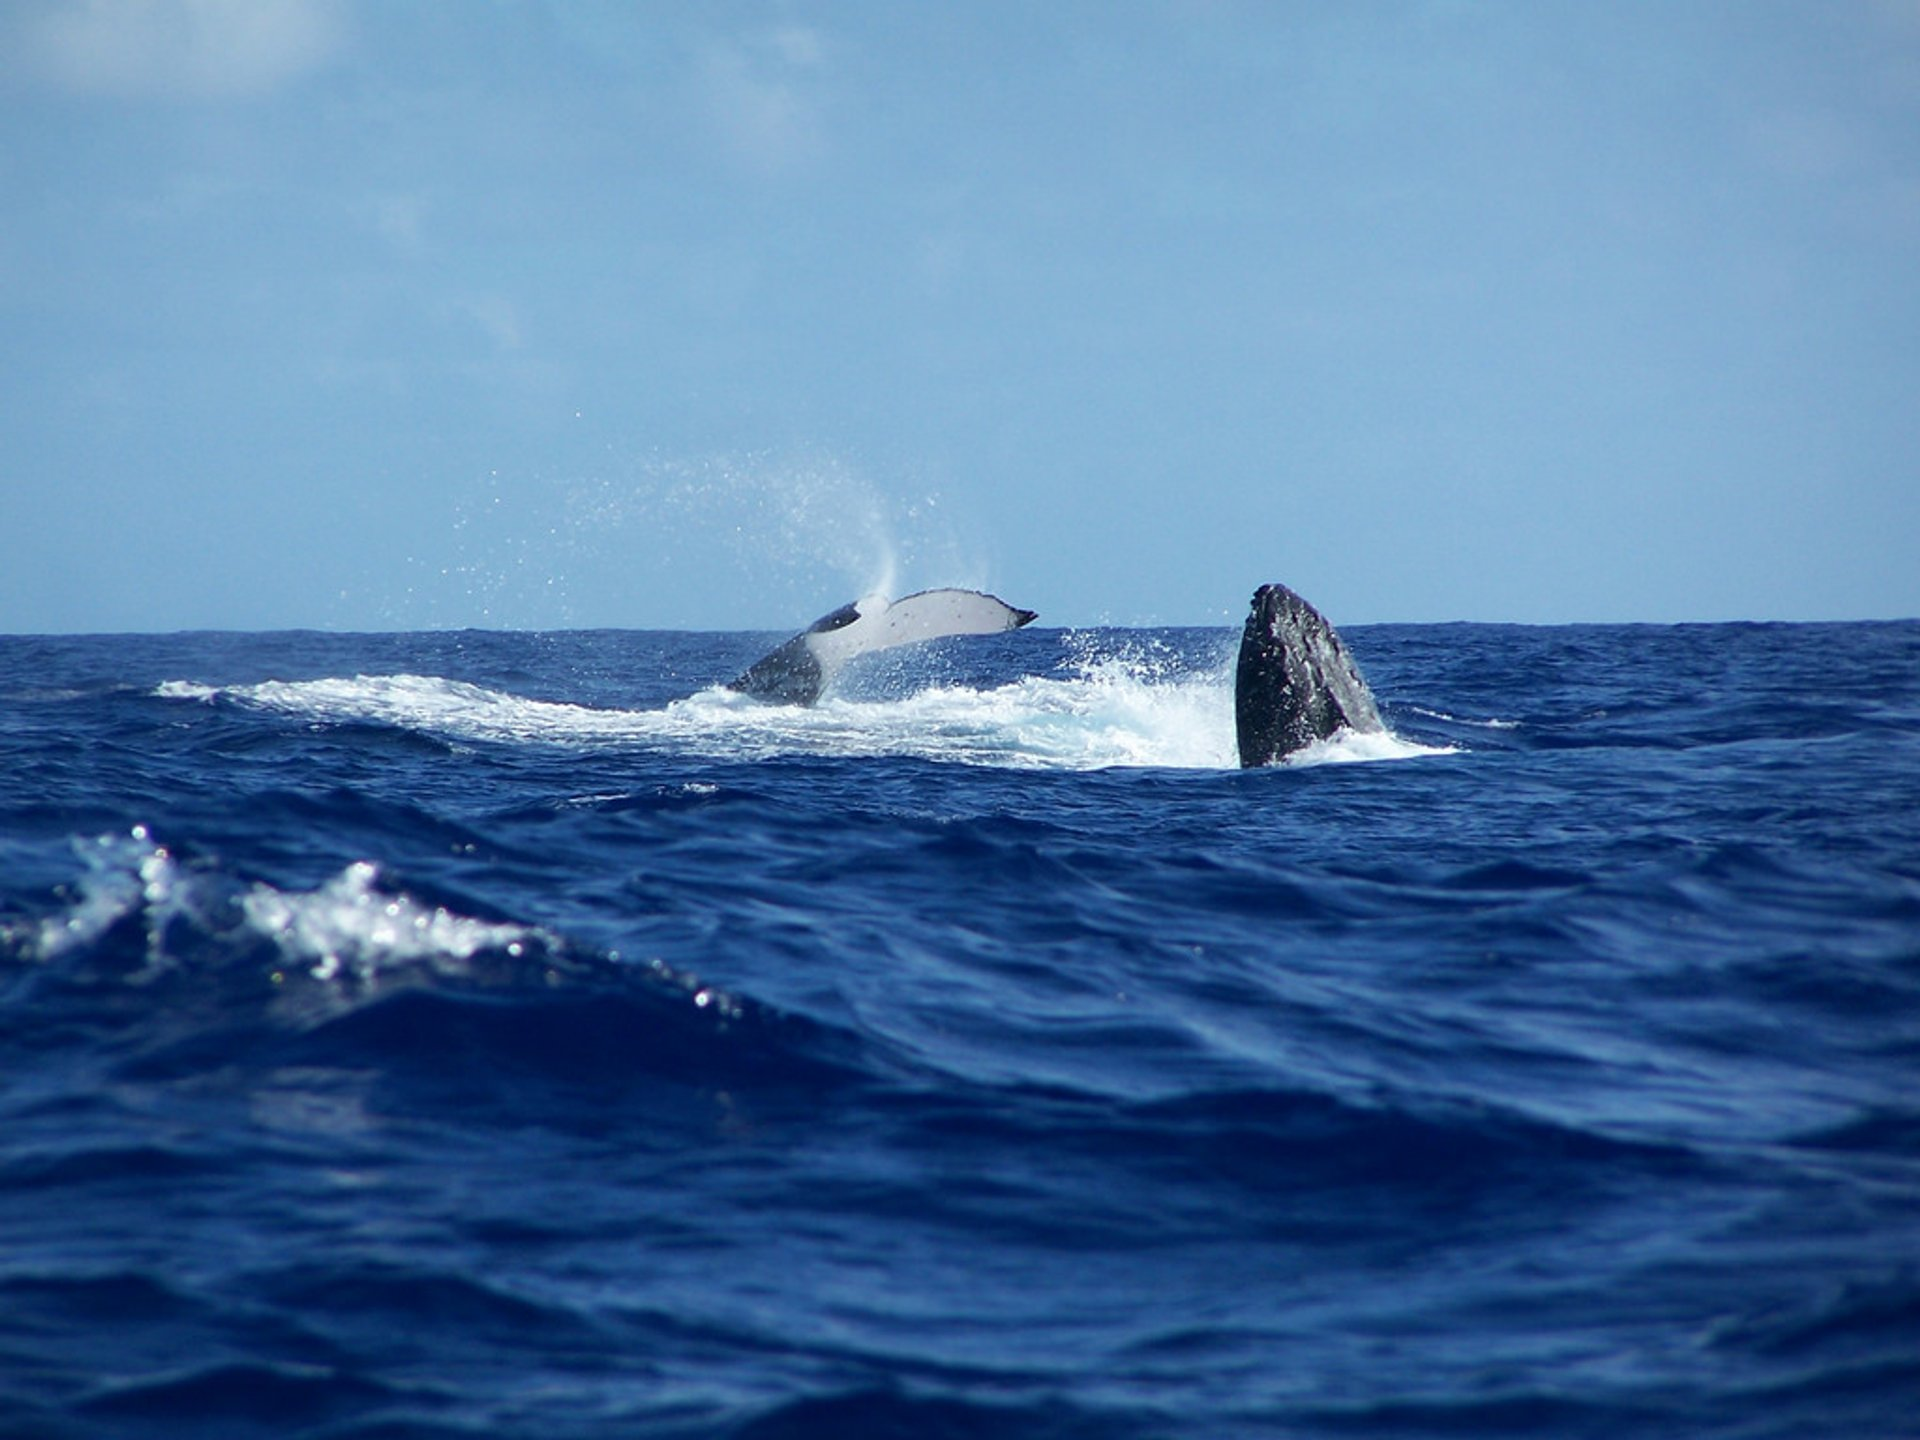 Humpback Whales in Fiji 2019 - Best Time